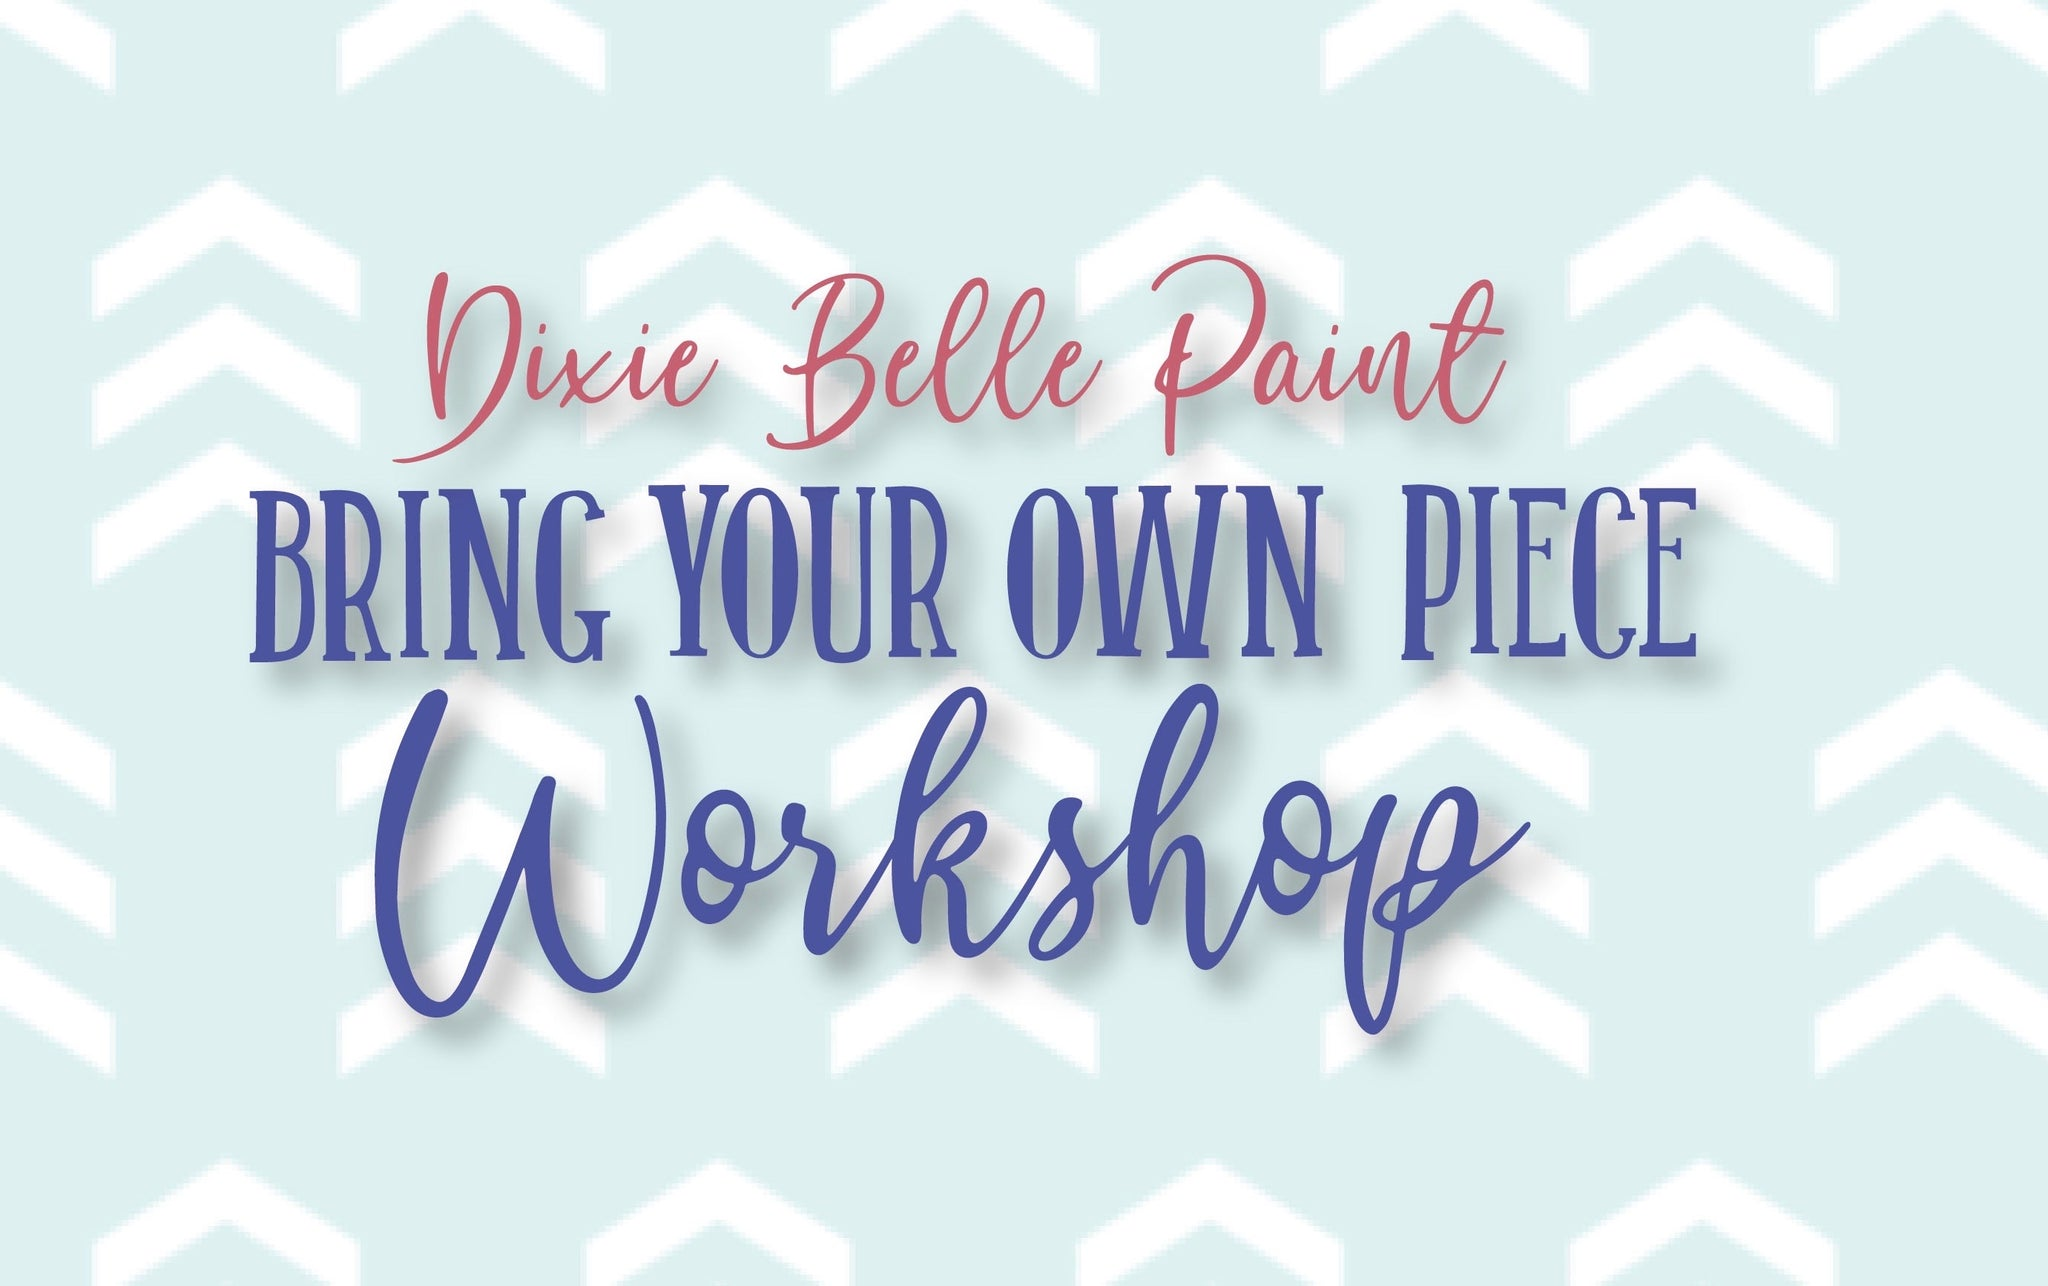 Dixie Belle bring your own piece workshop